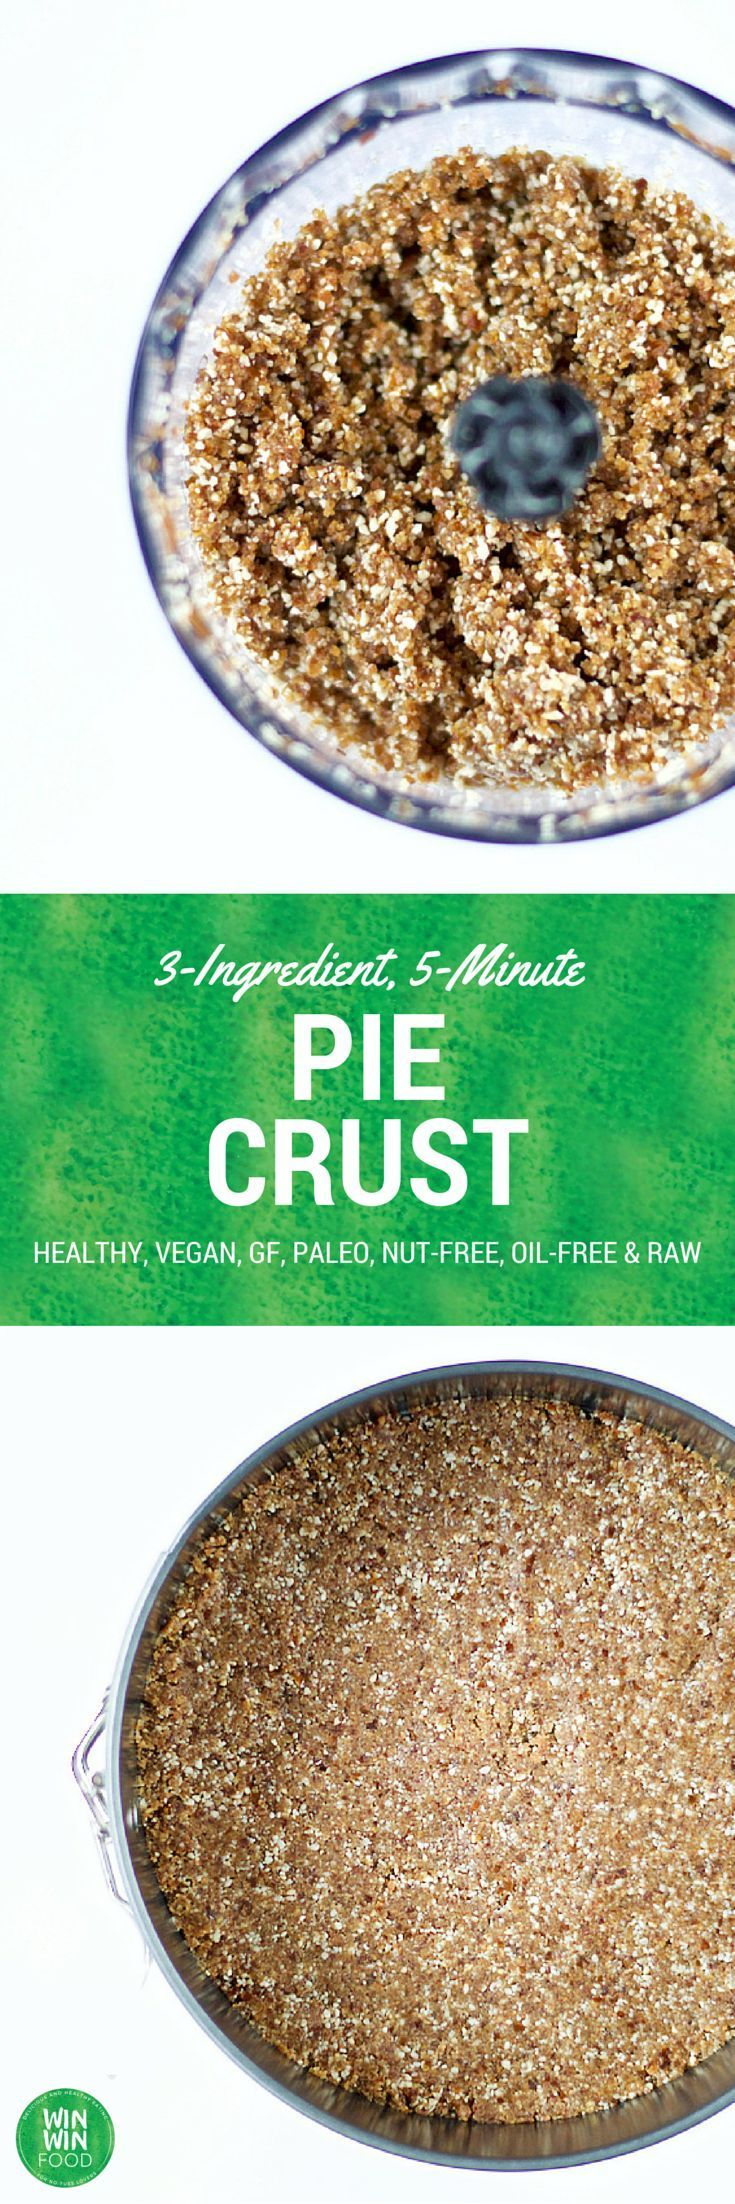 3-Ingredient, 5-Minute, Nut-Free Pie Crust - healthy, vegan, raw, paleo, glutenfree, and oilfree